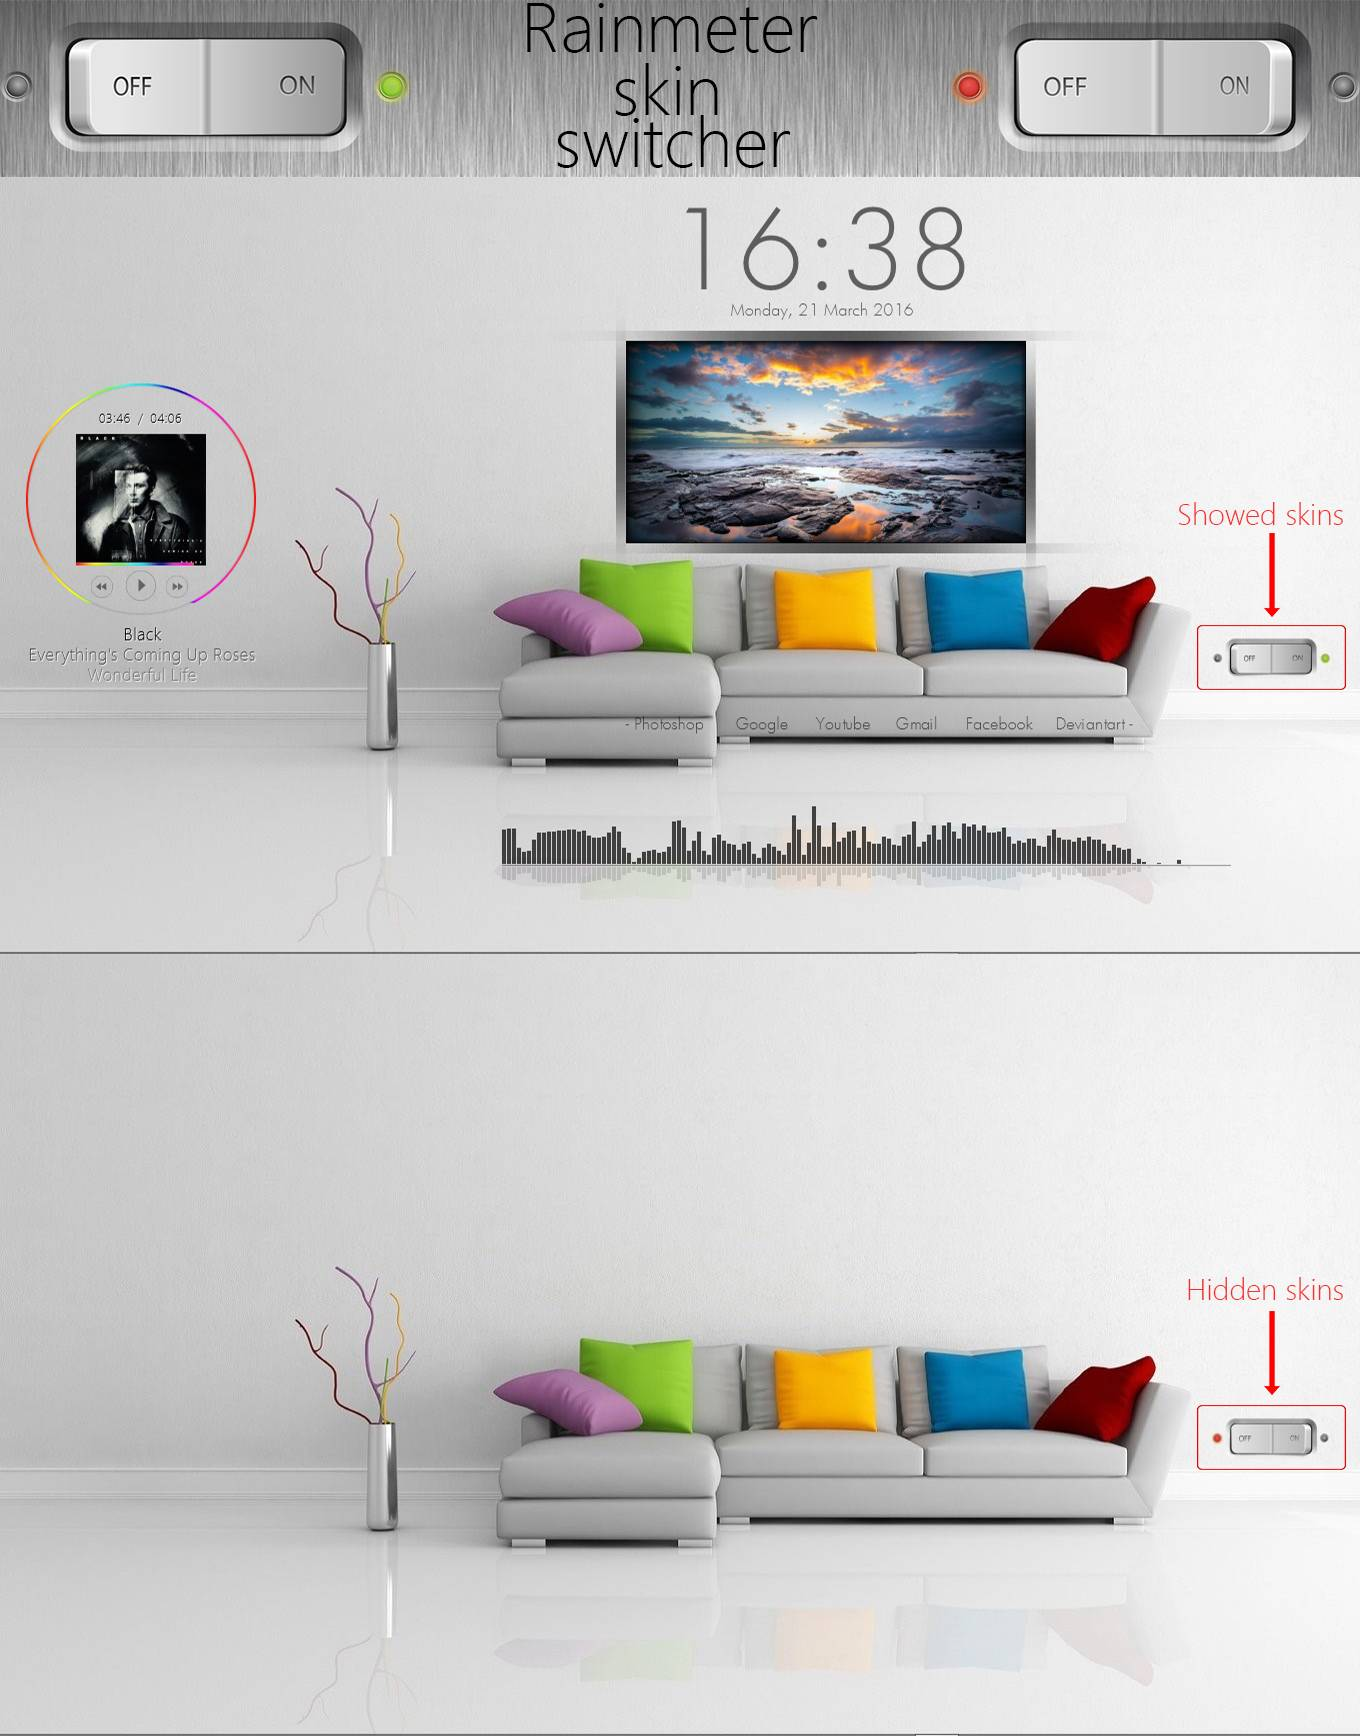 Rainmeter skin switcher by hiphopium